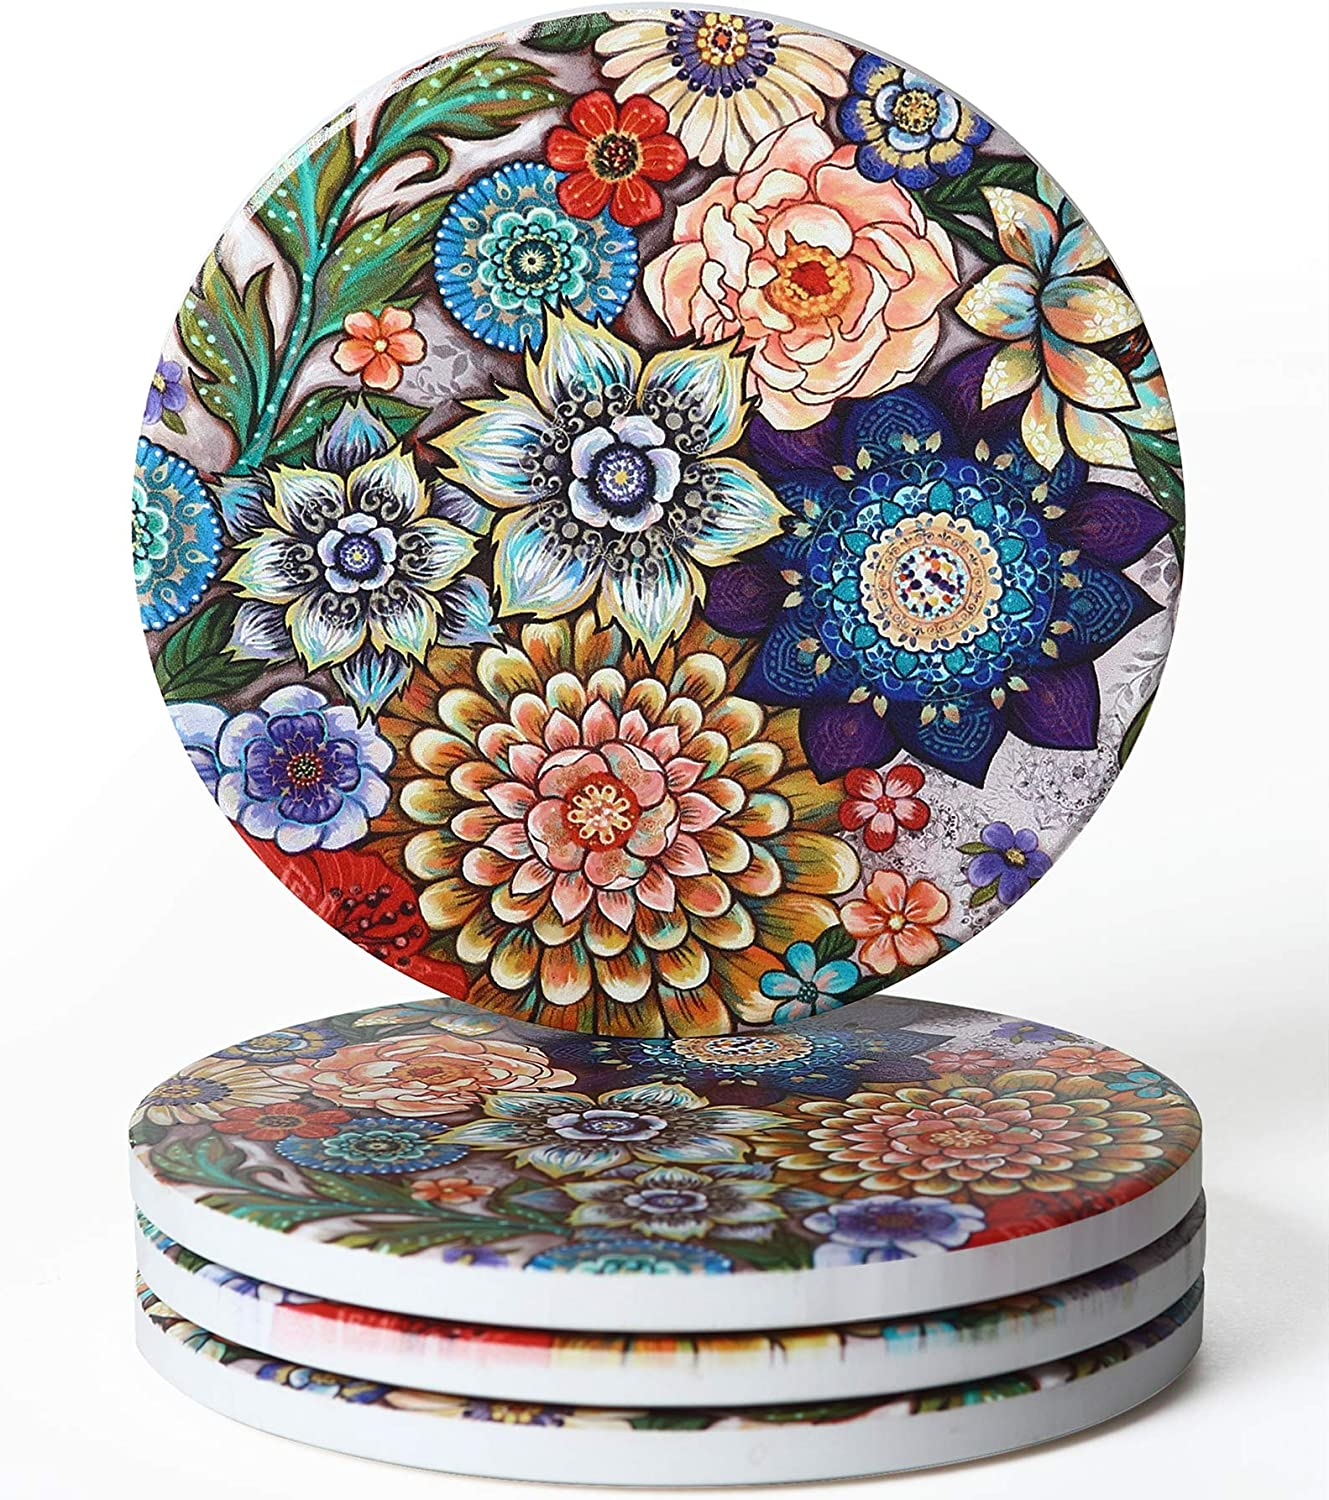 RoomTalks Boho Floral Coasters for Drinks Absorbent 4 PCS Bouquet Flowers Vintage Chic Ceramic Stone Coaster with Cork Back Modern Farmhouse Coasters for Wooden/Coffee Table (Colorful, 4 Pieces)